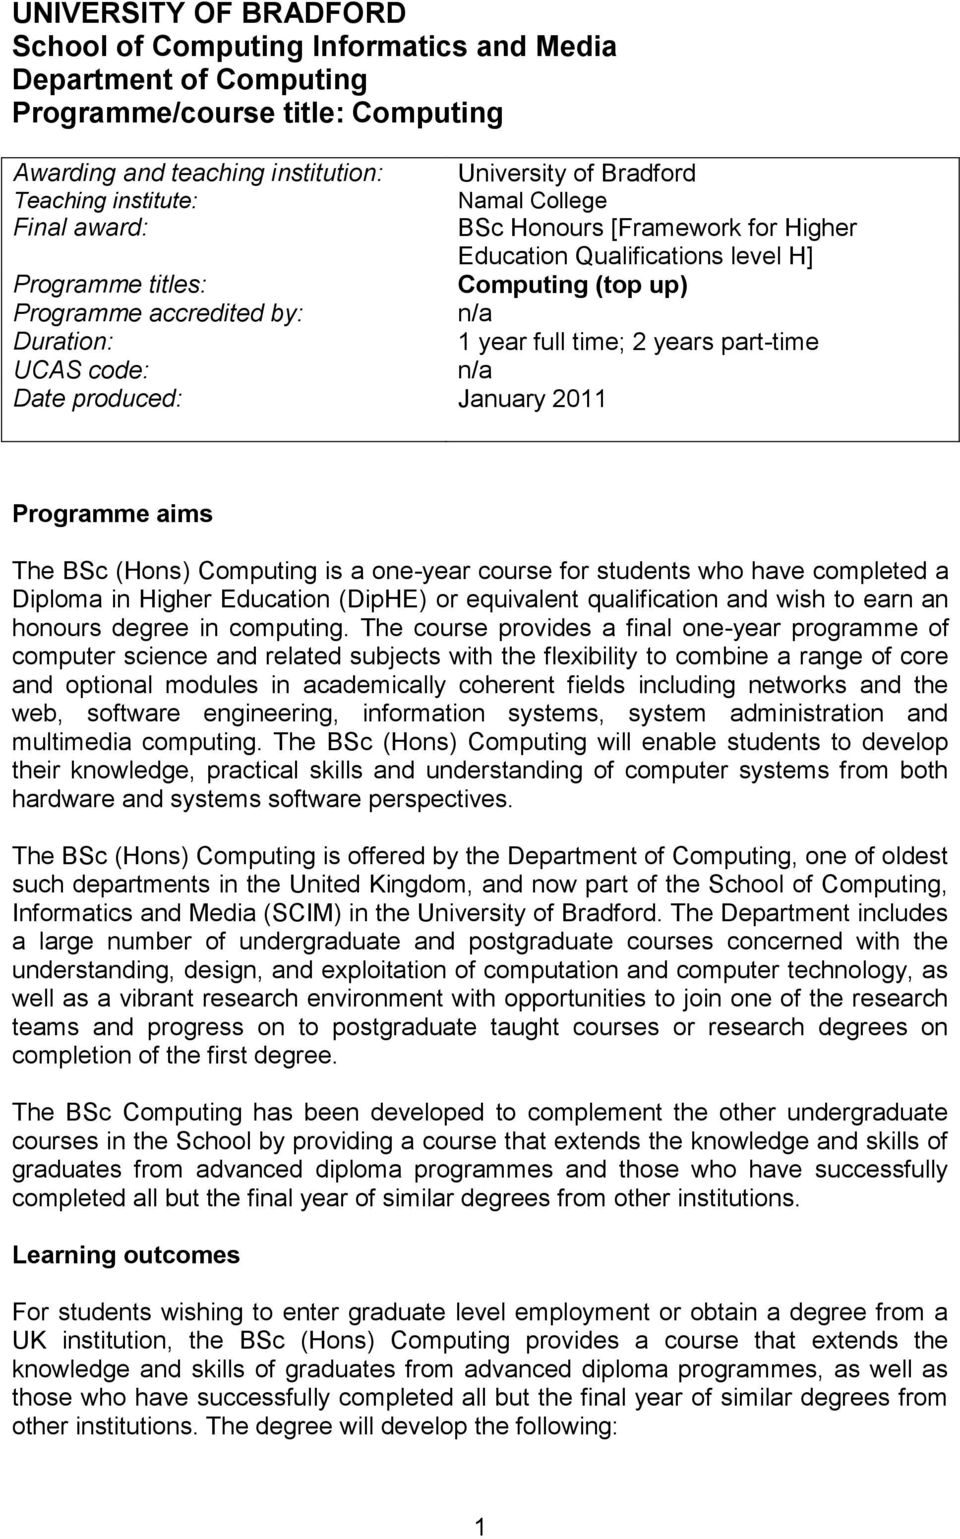 years part-time UCAS code: n/a Date produced: January 2011 Programme aims The BSc (Hons) Computing is a one-year course for students who have completed a Diploma in Higher Education (DipHE) or